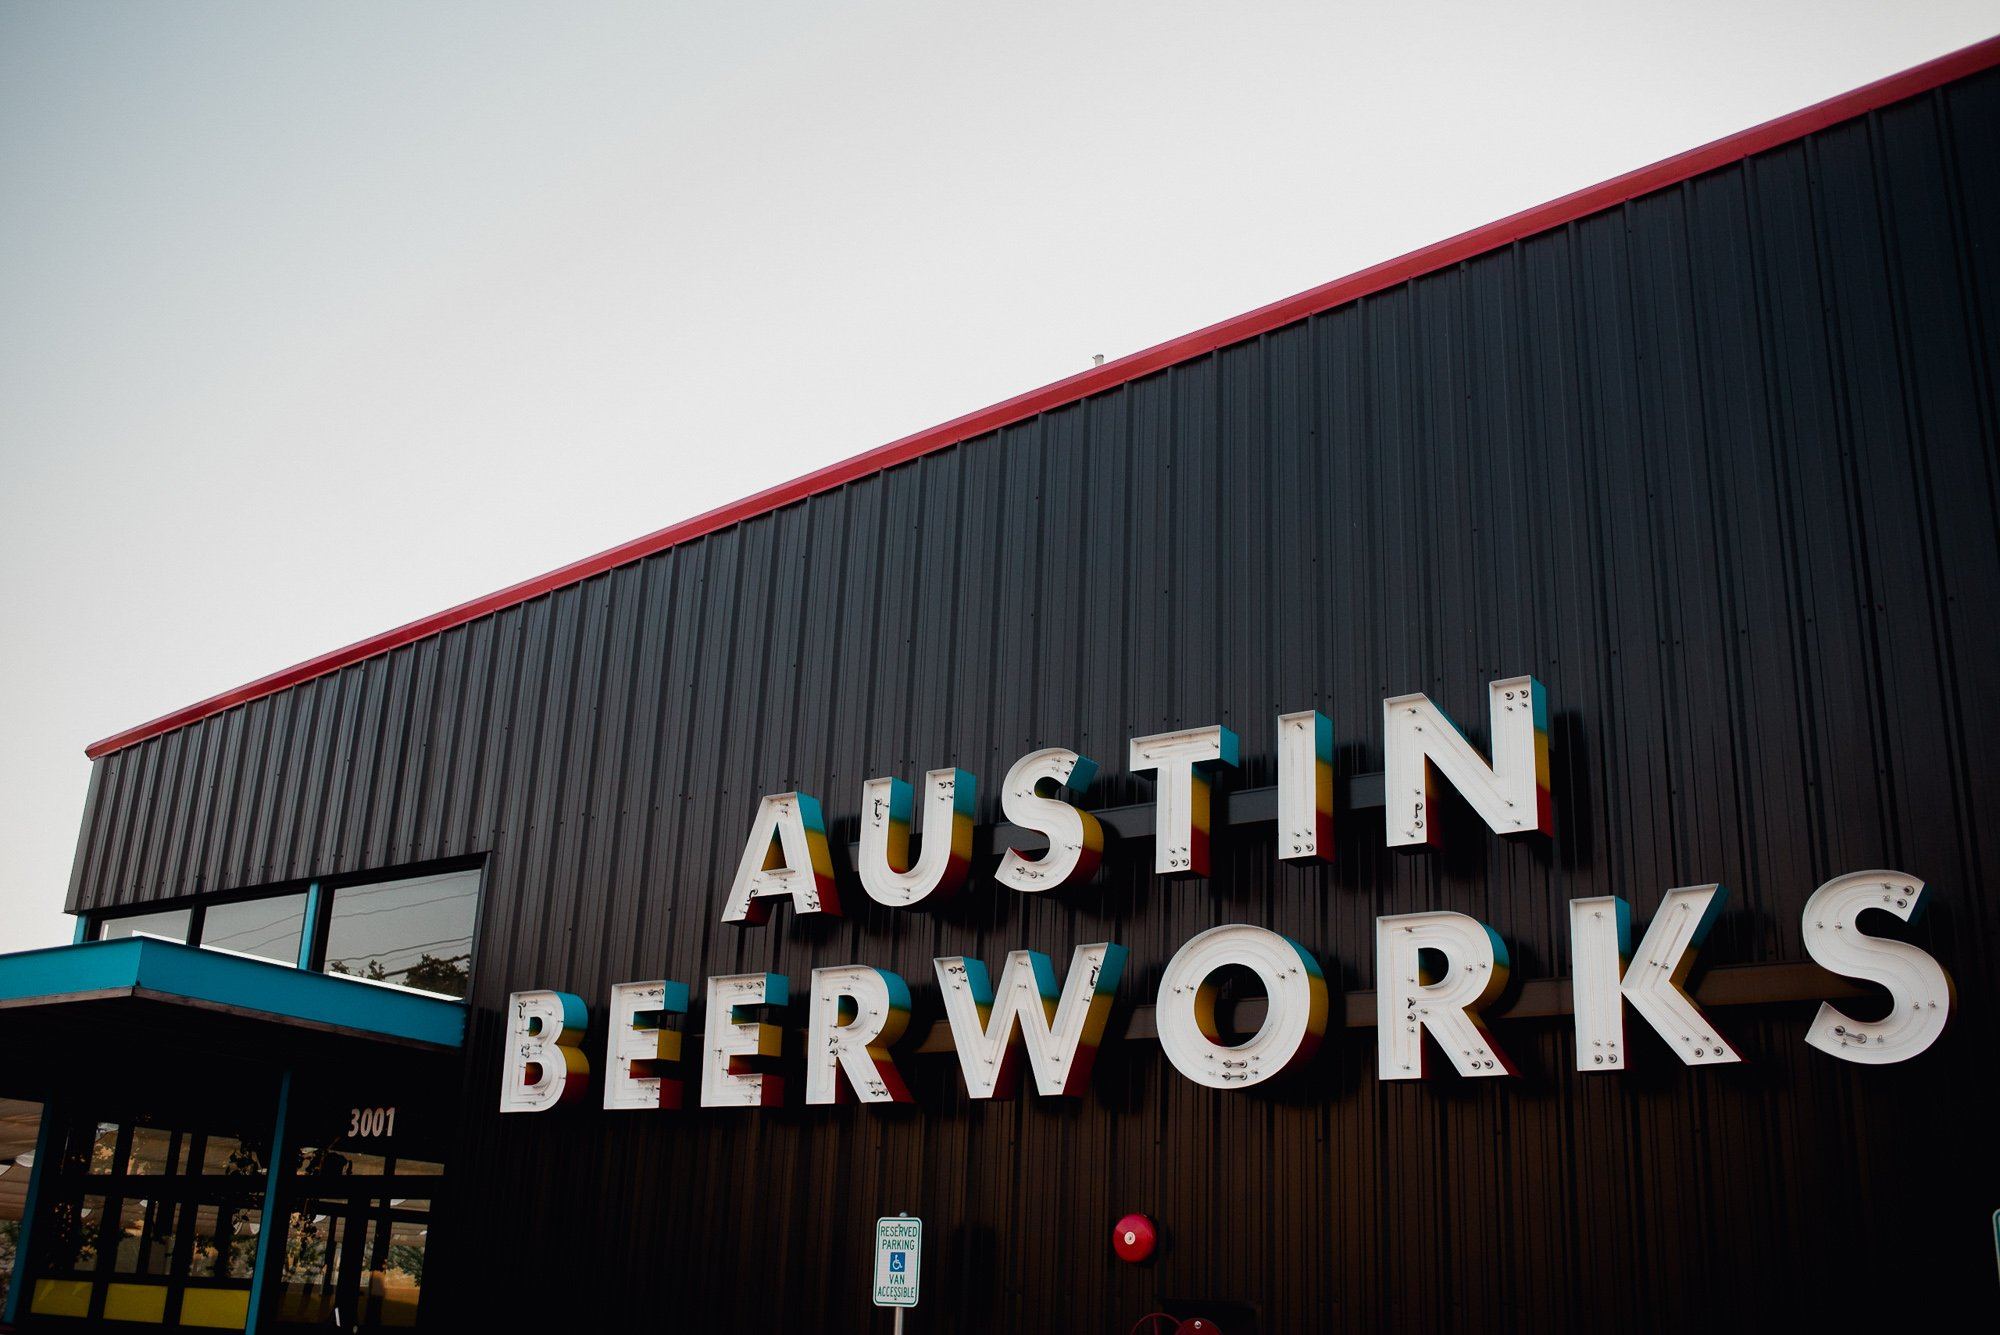 engagement session at austin beerworks, creative engagement session location ideas, brewery engagement session ideas